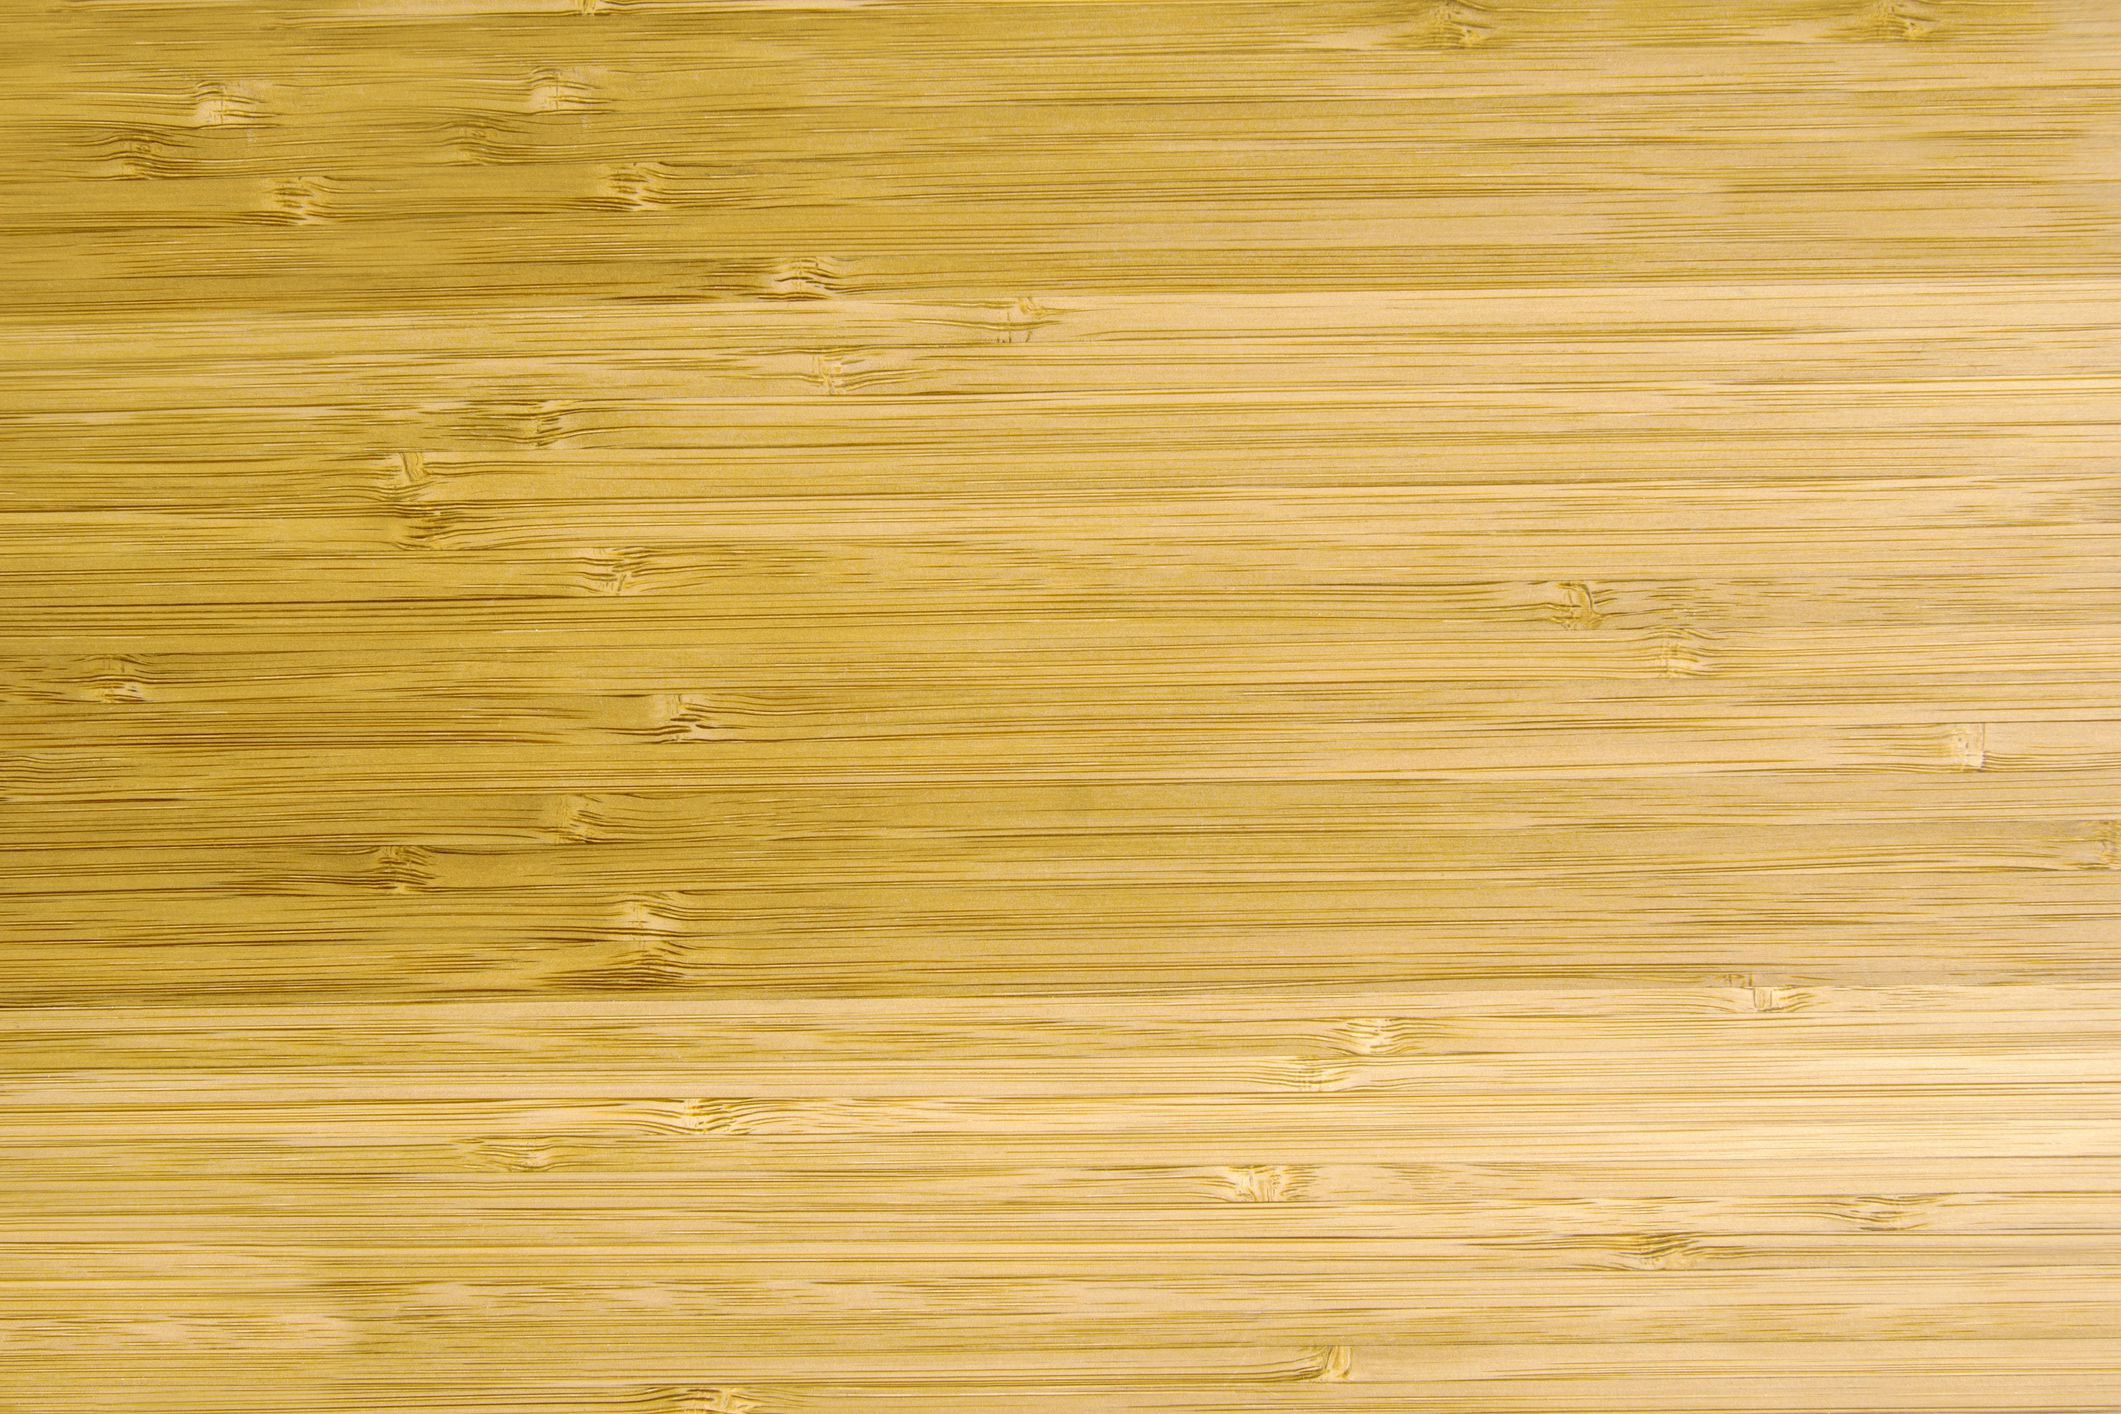 lumber liquidators hardwood flooring of 5 best bamboo floors with bamboo board 175428713 581a20835f9b581c0b953203